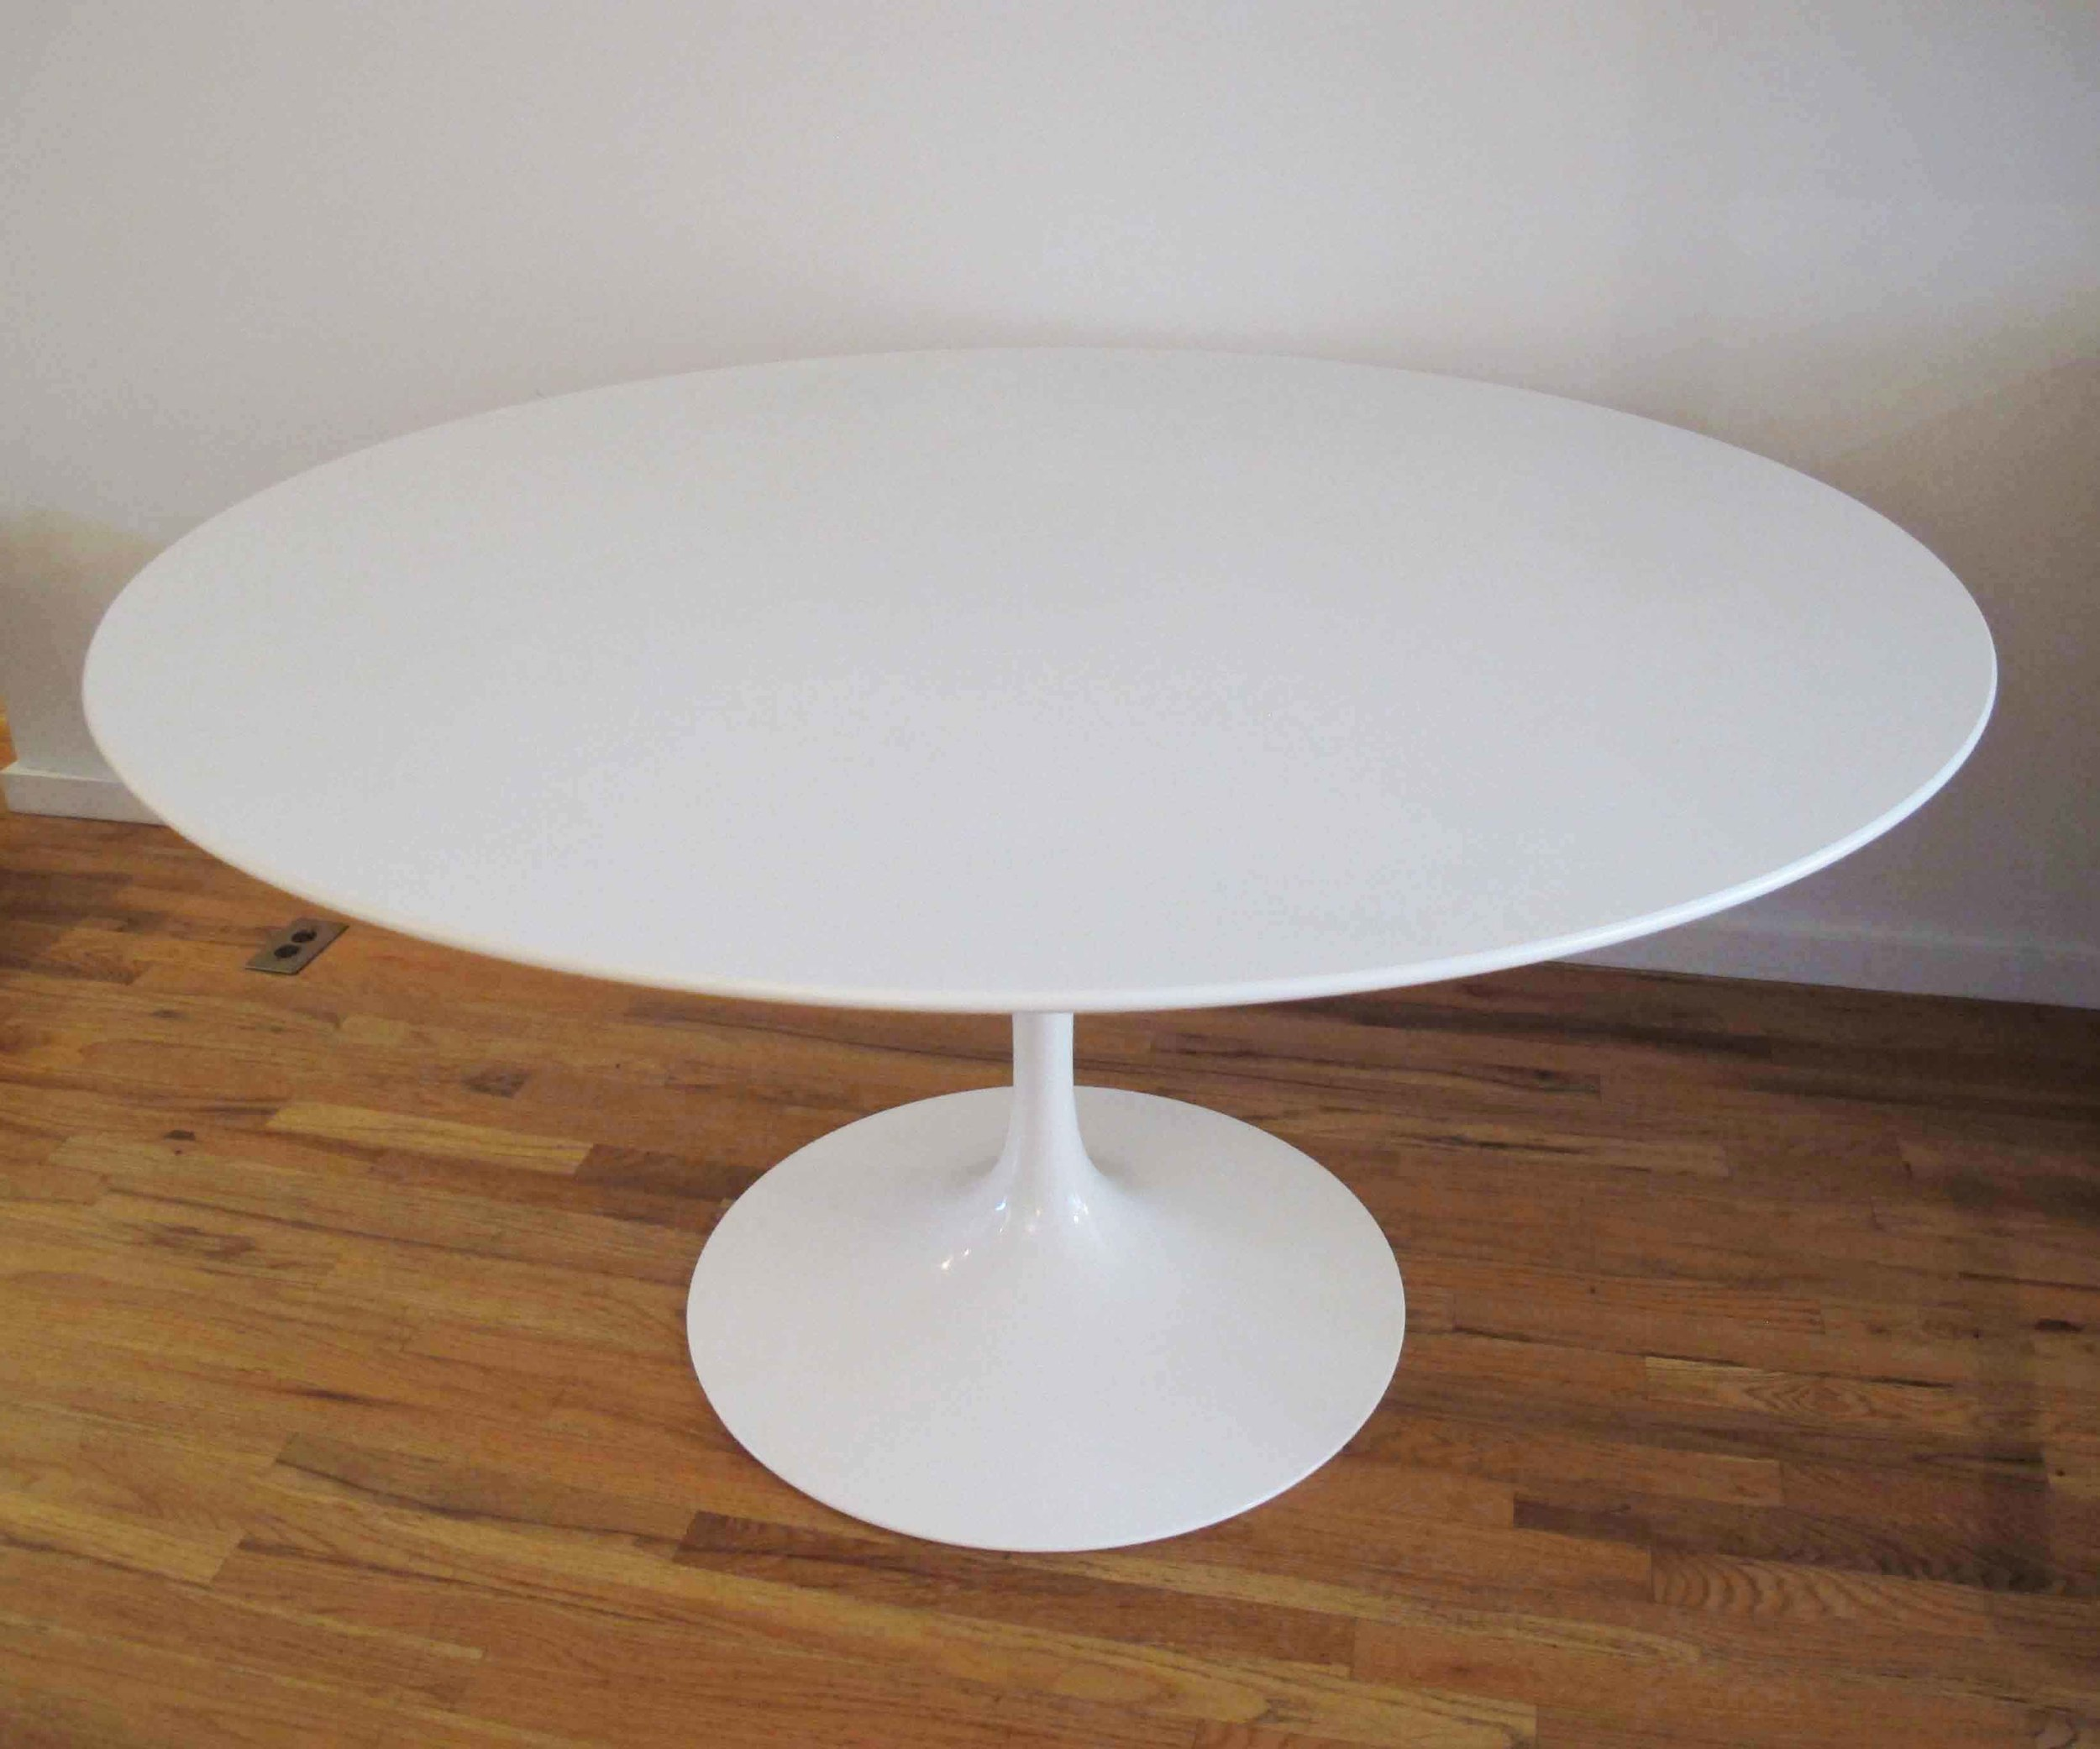 MID CENTURY SAARINEN WHITE LAMINATE ROUND TOP DINING TABLE BY KNOLL